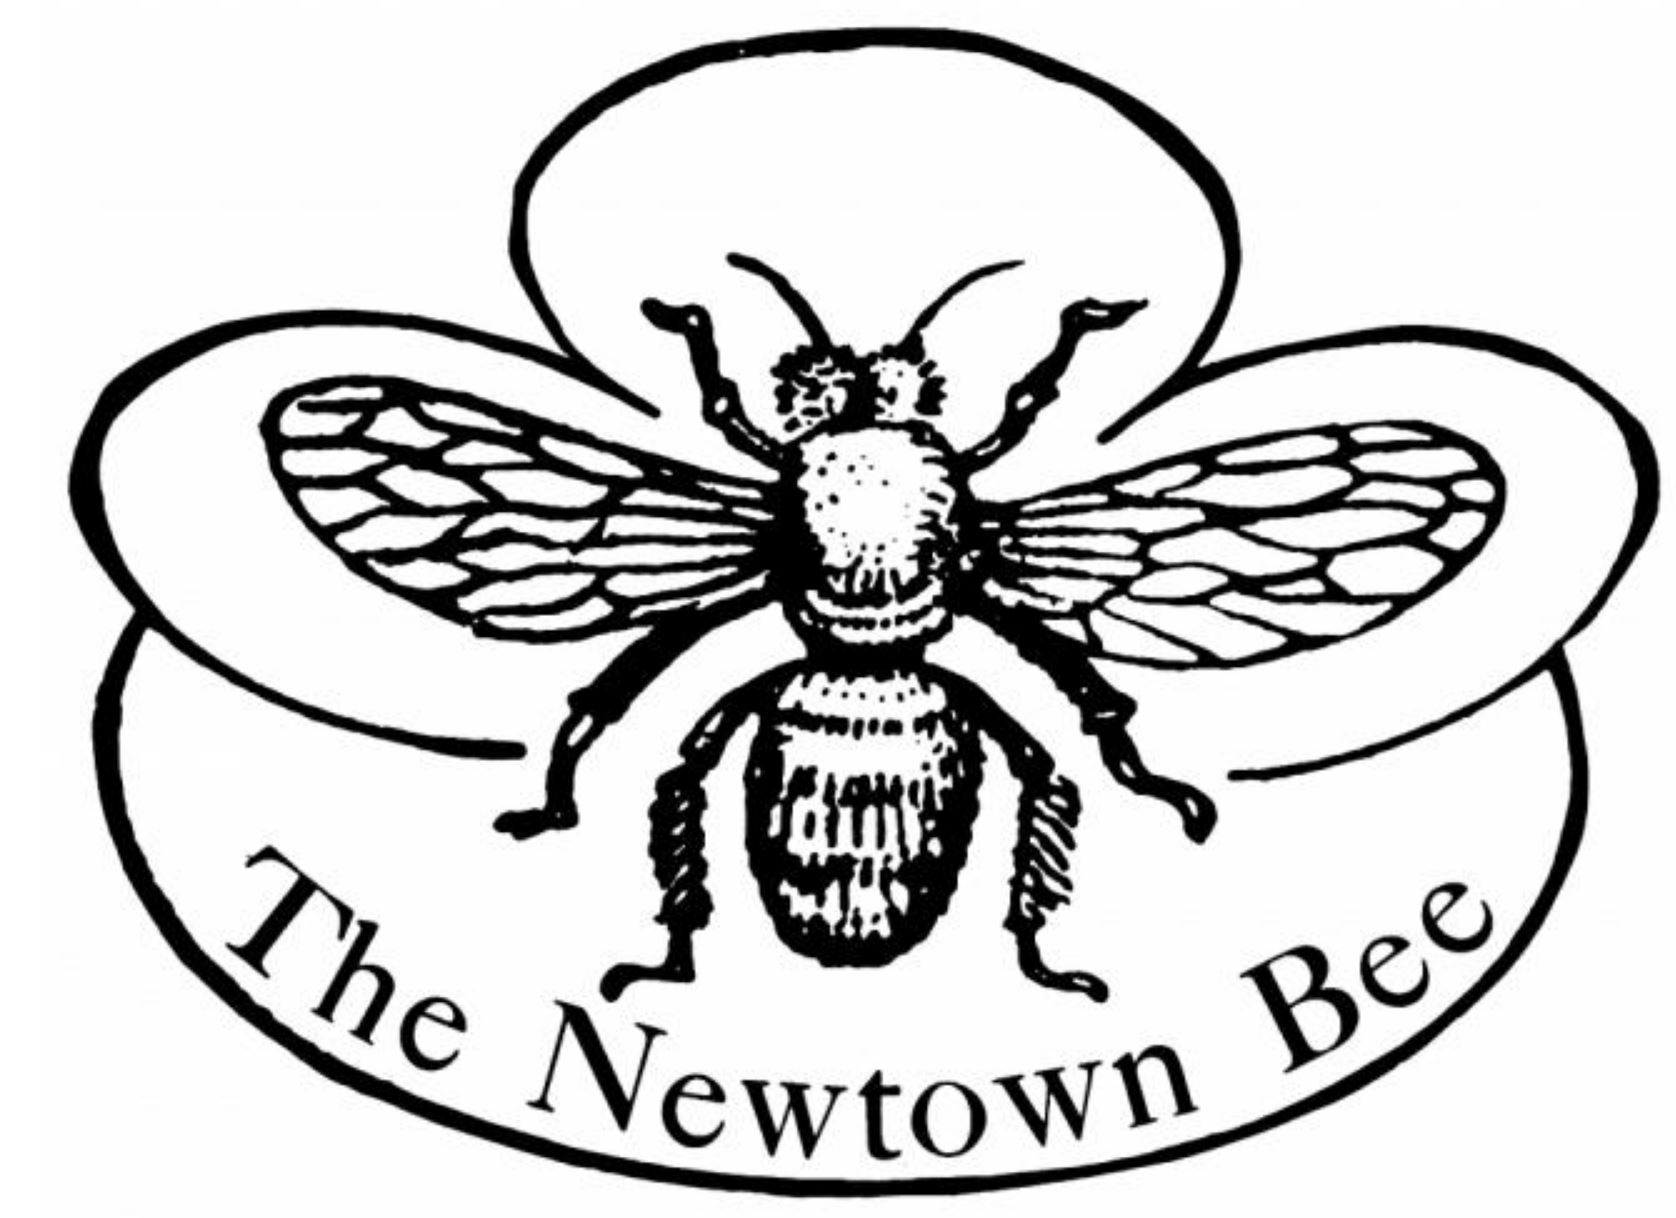 The Newtown Bee Endorses Tony Hwang